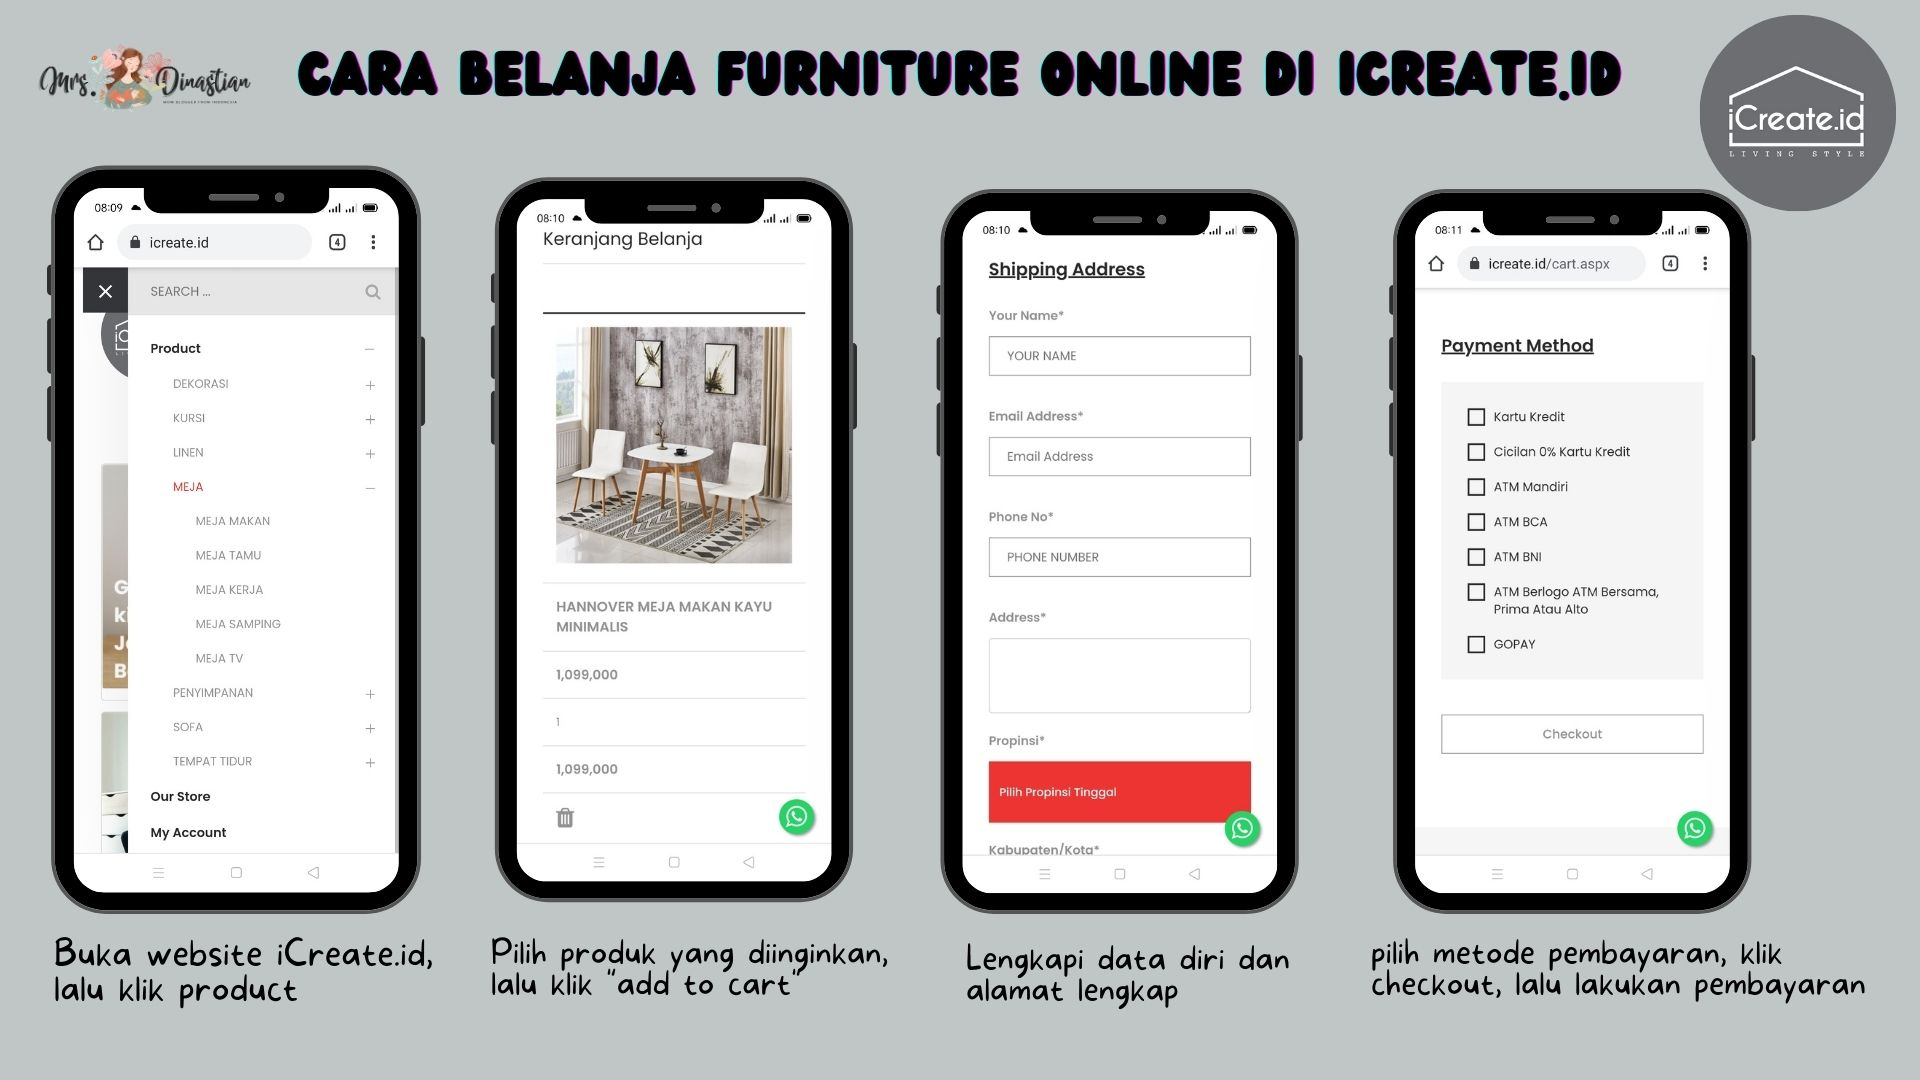 Cara Order Furniture di iCreate.id